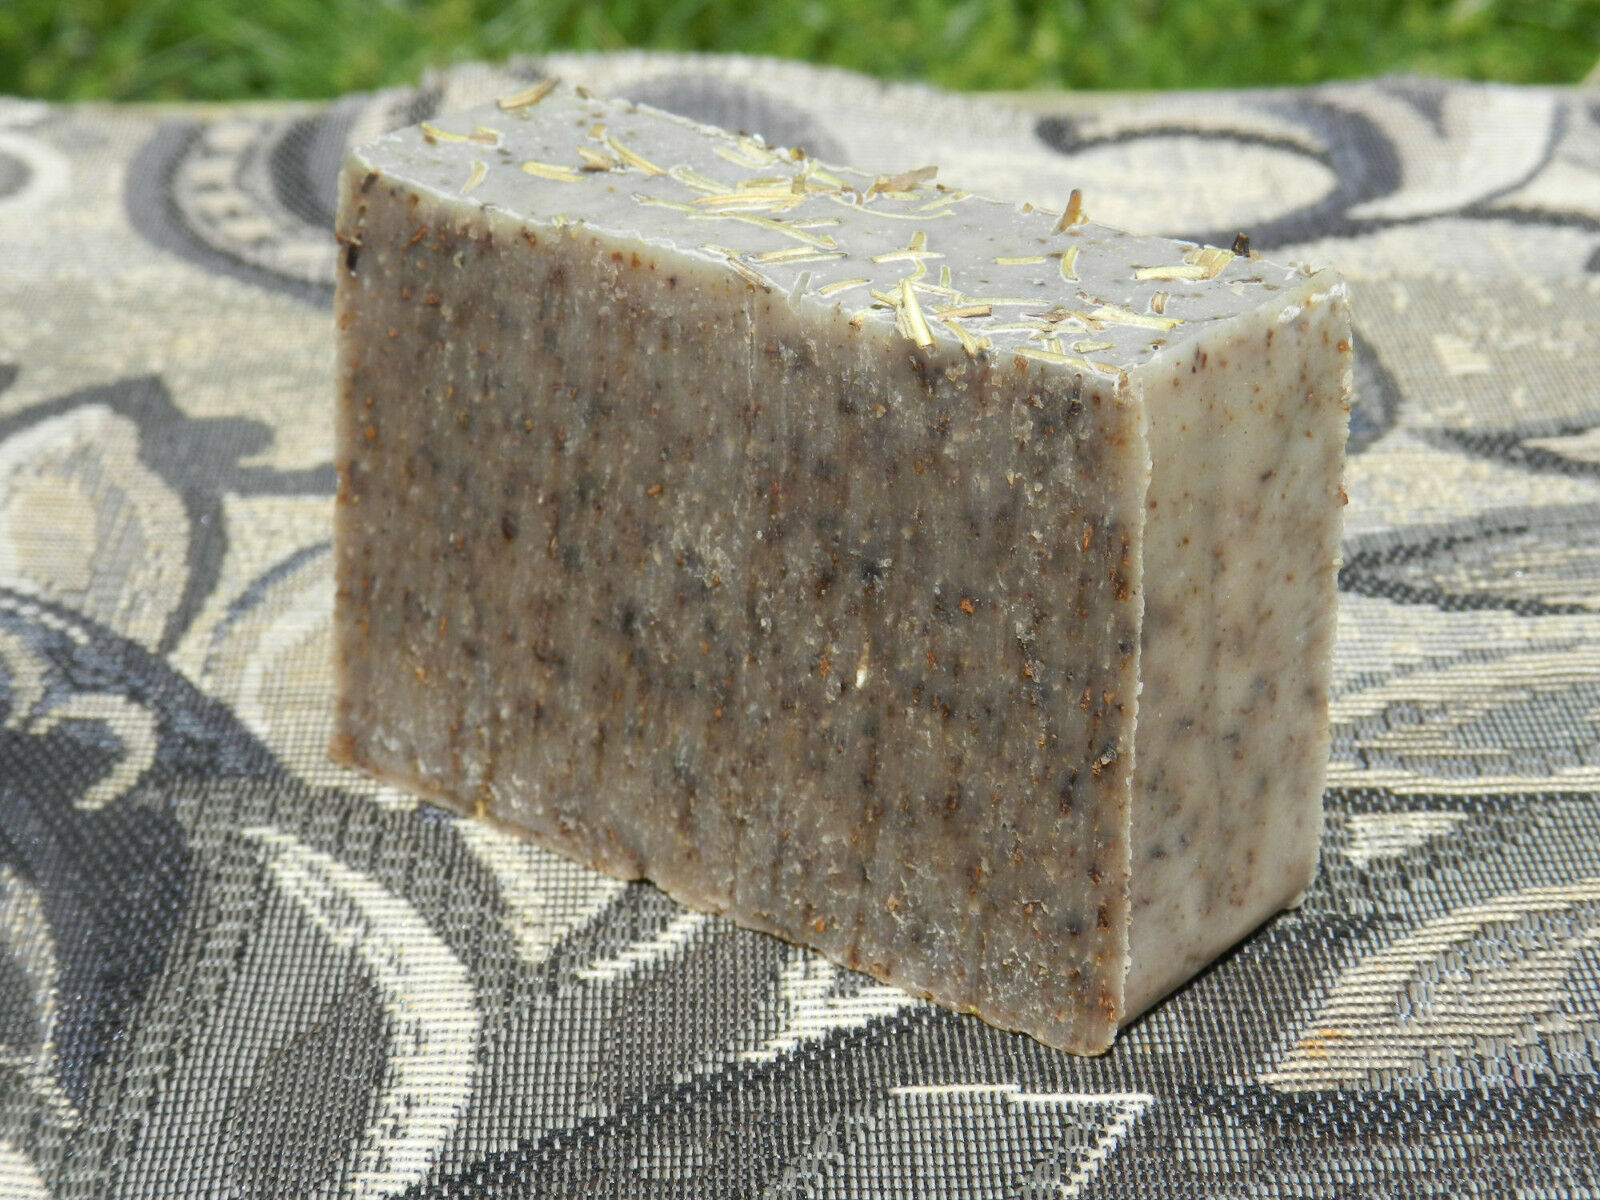 dog bar soap diatomaceous earth natural flea tick rosemary lavender coconut oil